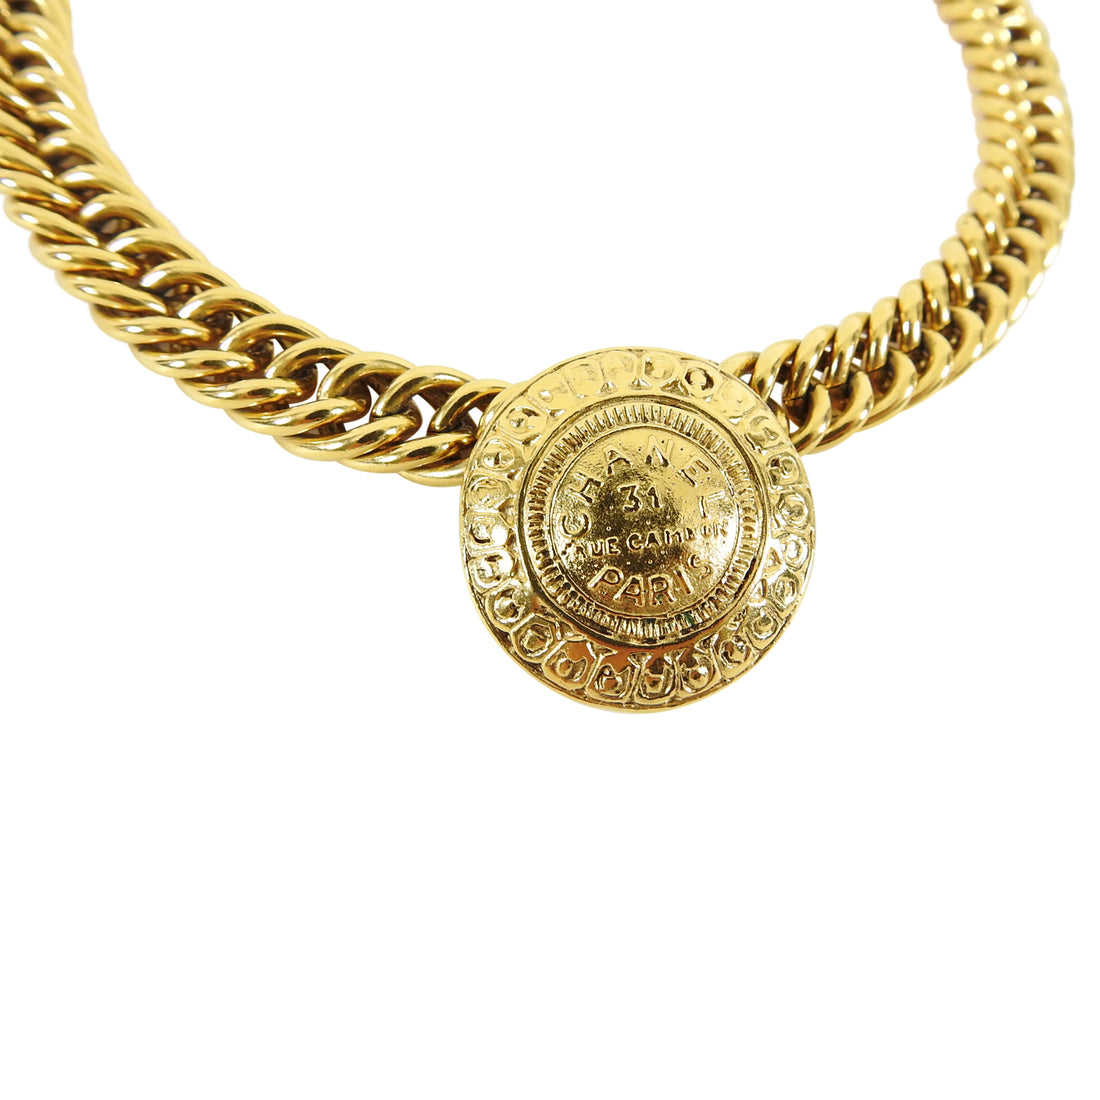 Chanel Vintage 1990's 31 Rue Cambon Medallion Chain Necklace